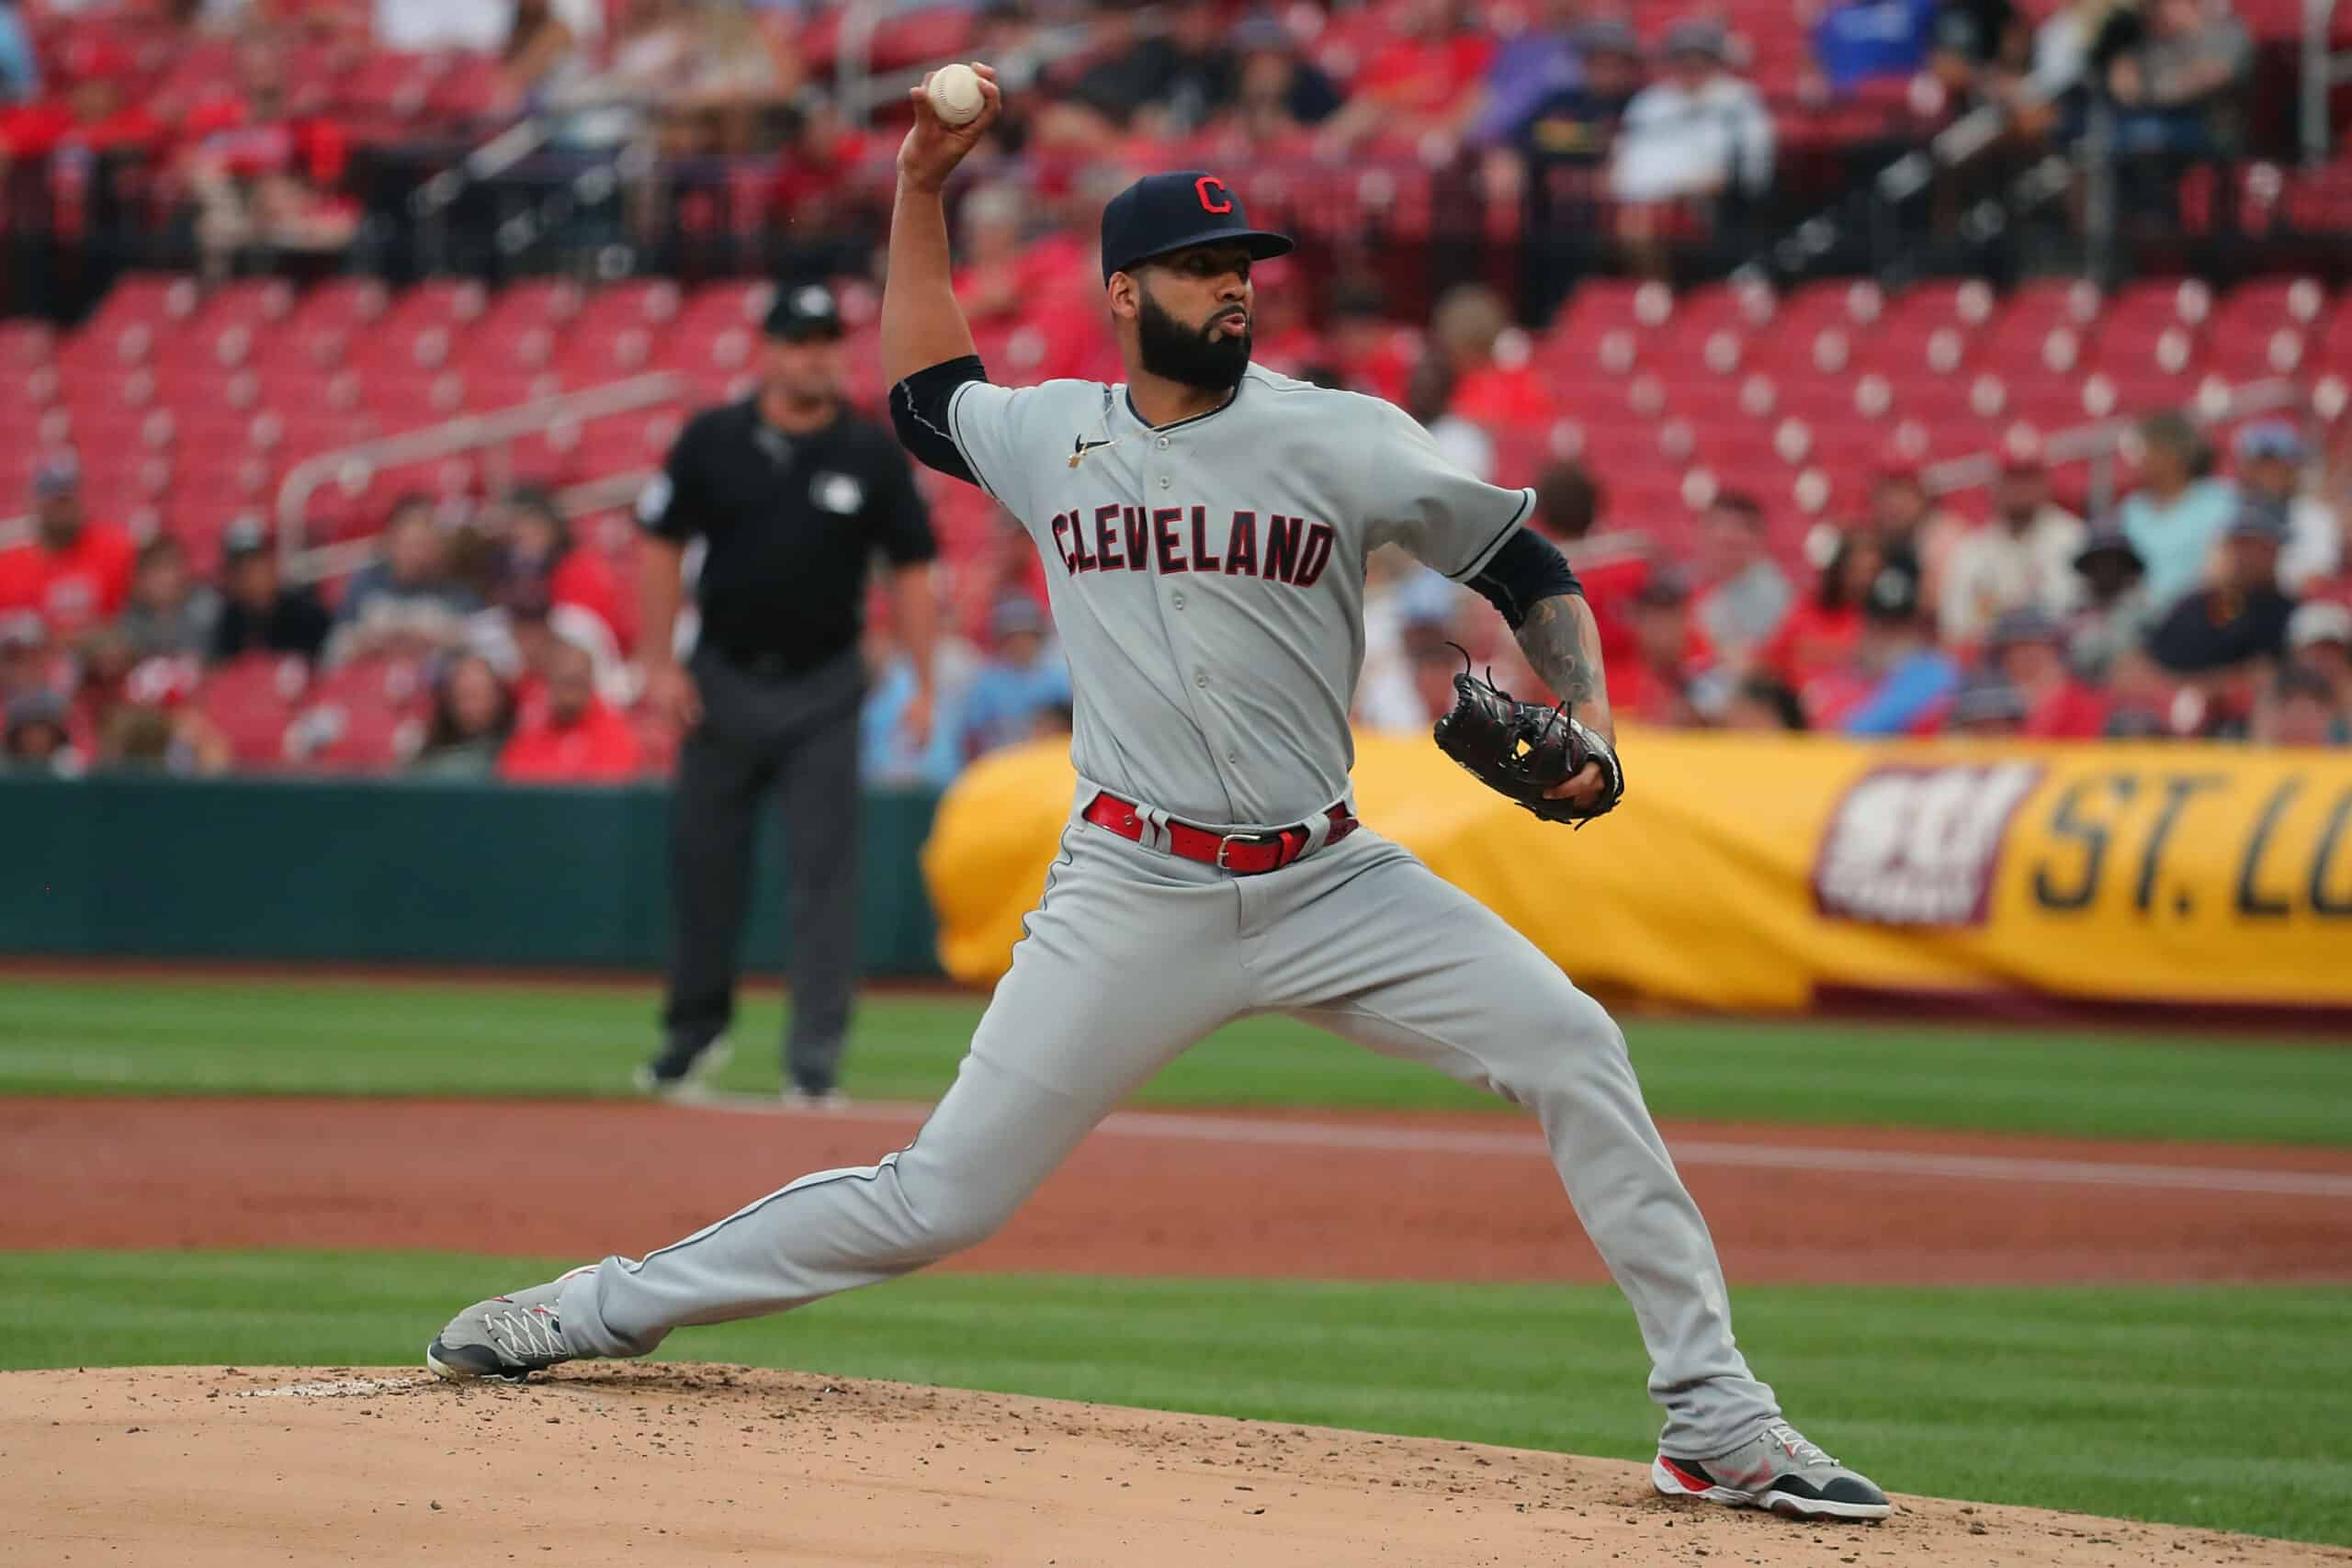 Jean Carlos Mejia #36 of the Cleveland Indians delivers a pitch against the St. Louis Cardinals in the first inning at Busch Stadium on June 9, 2021 in St Louis, Missouri.